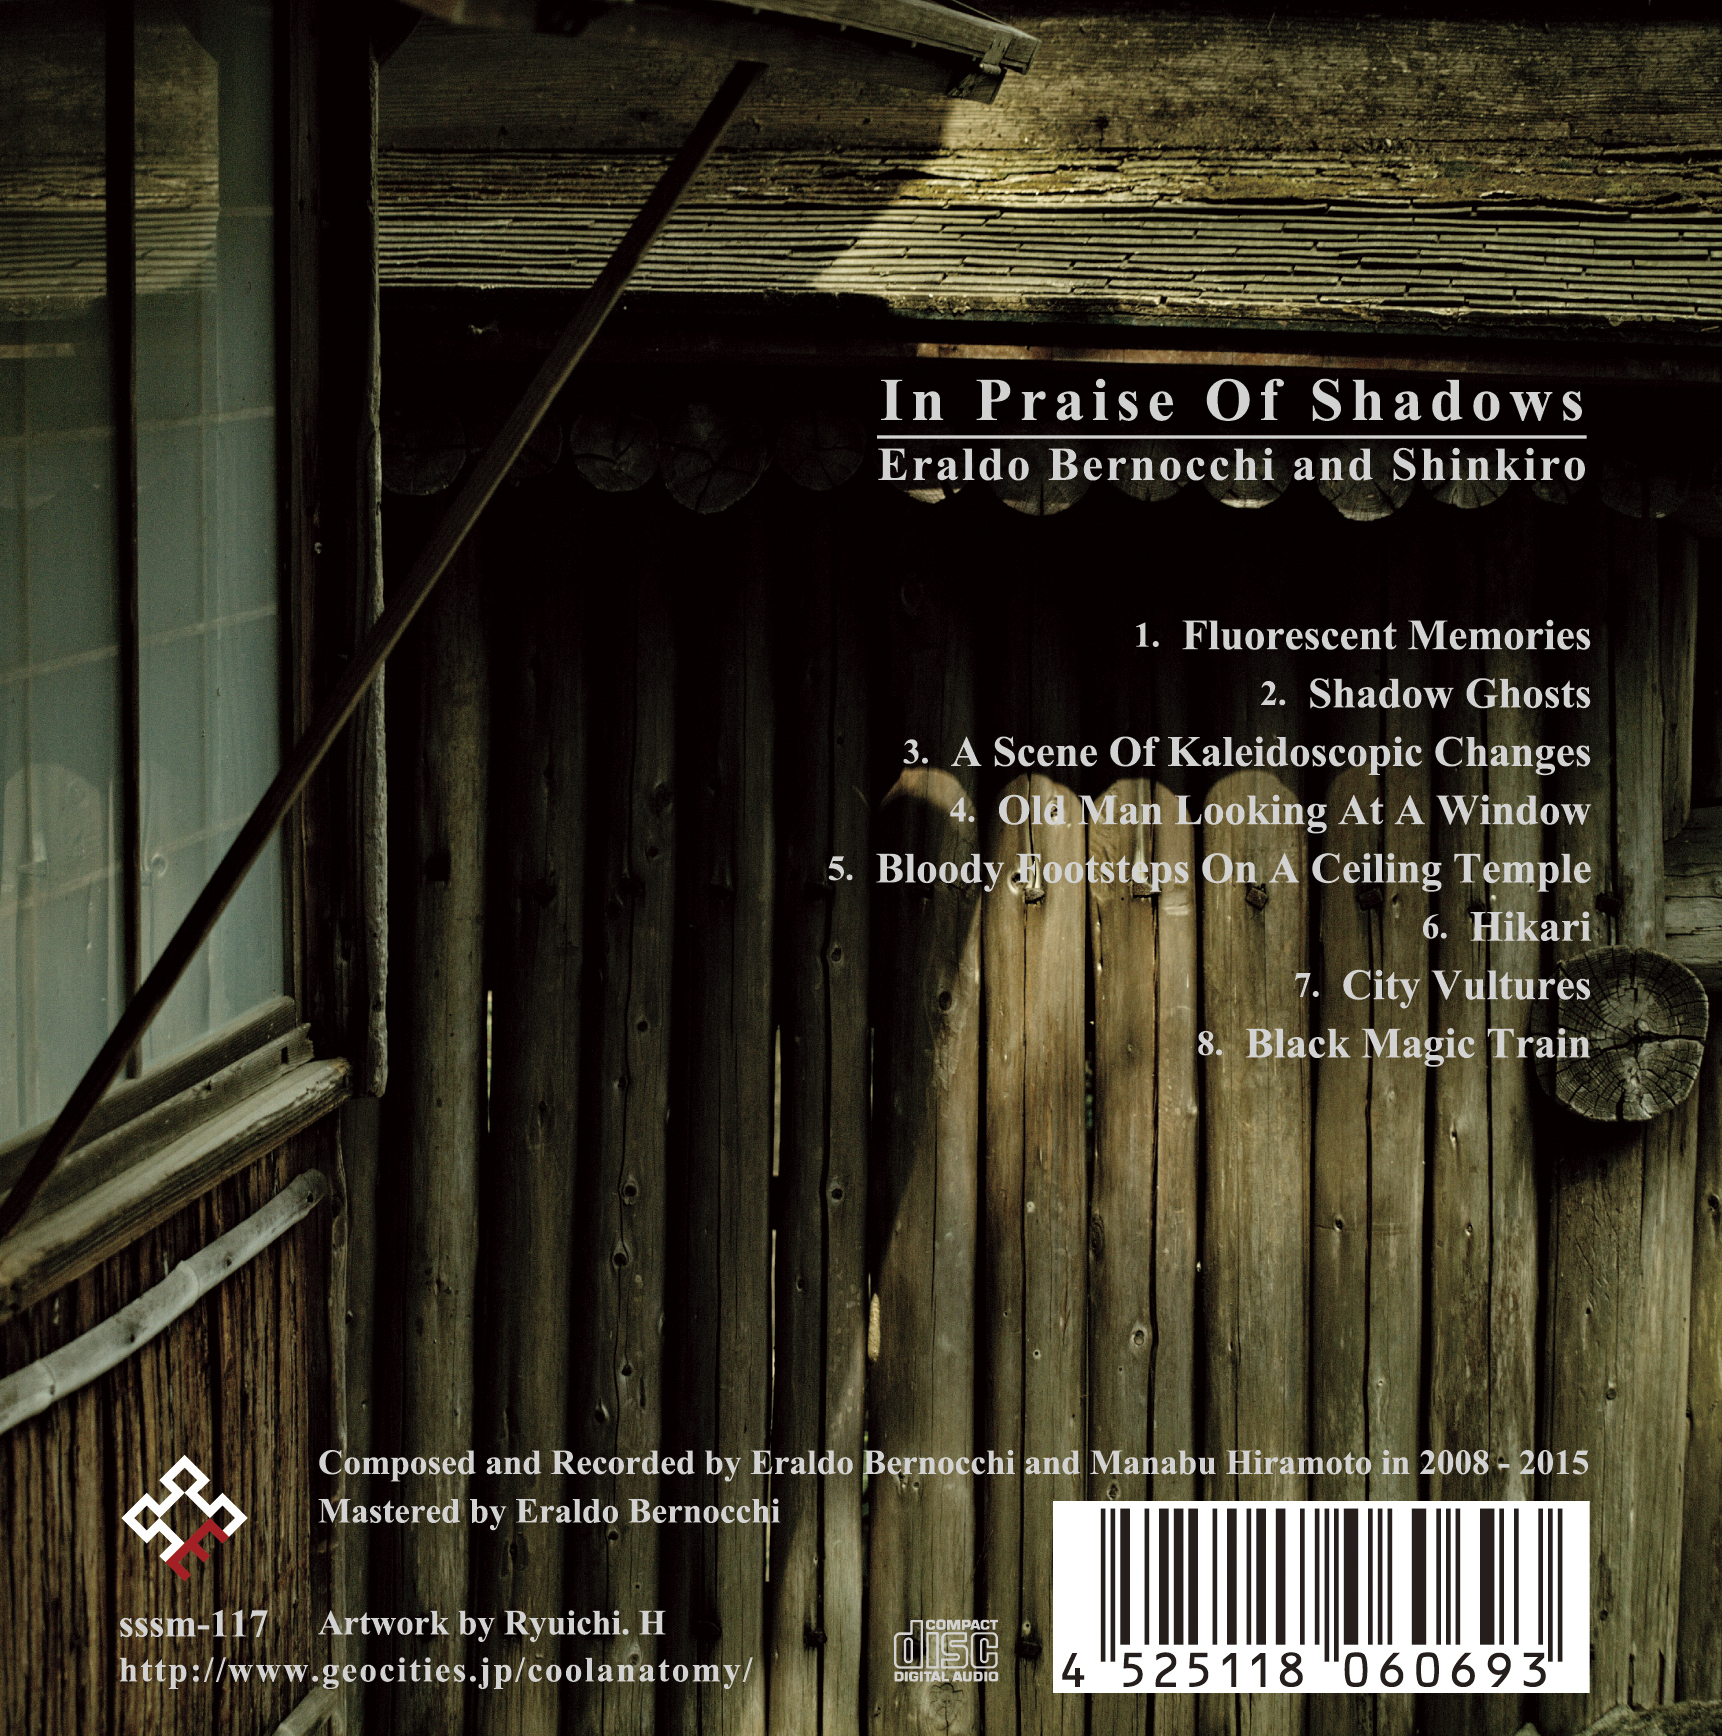 Eraldo Bernocchi and Shinkiro - In Praise Of Shadows  CD - 画像2